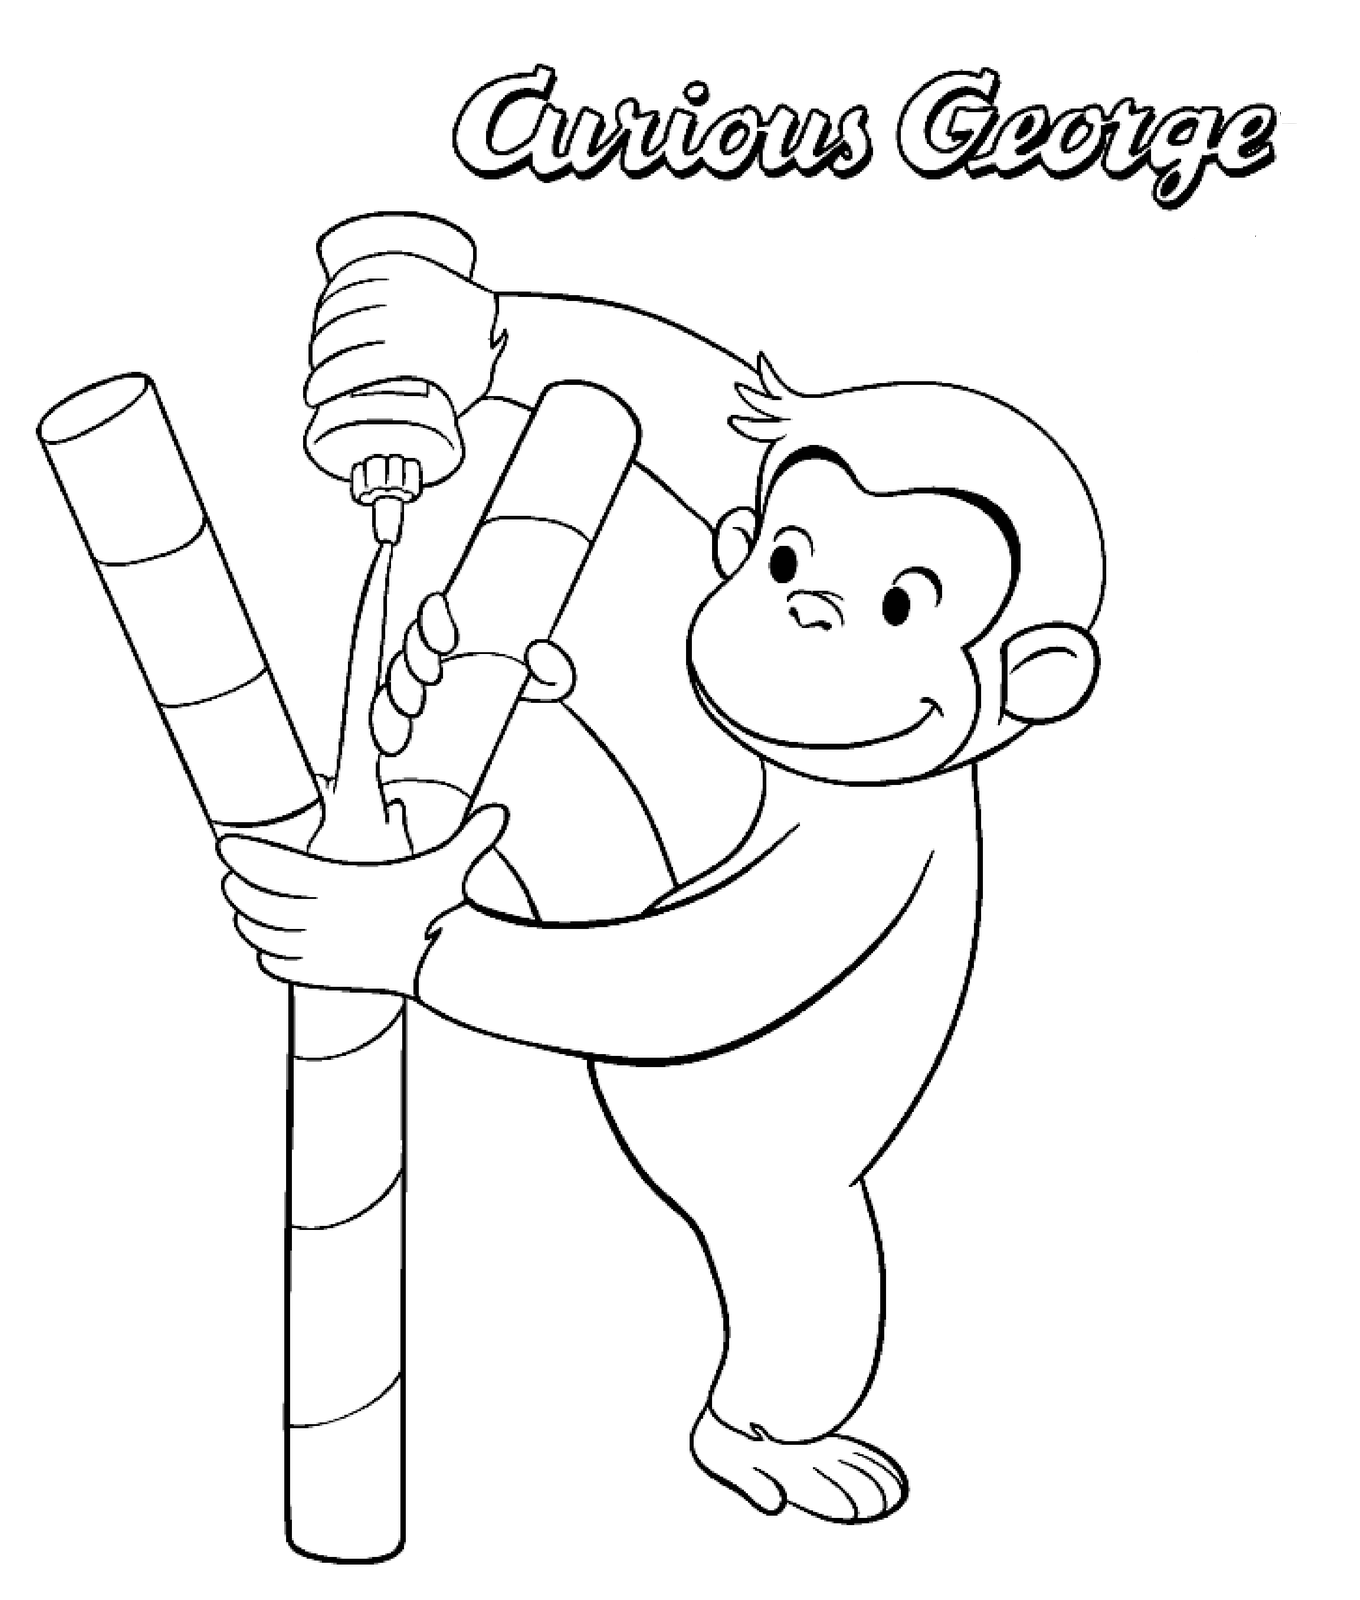 Curious George Drawing at GetDrawings.com   Free for personal use ...